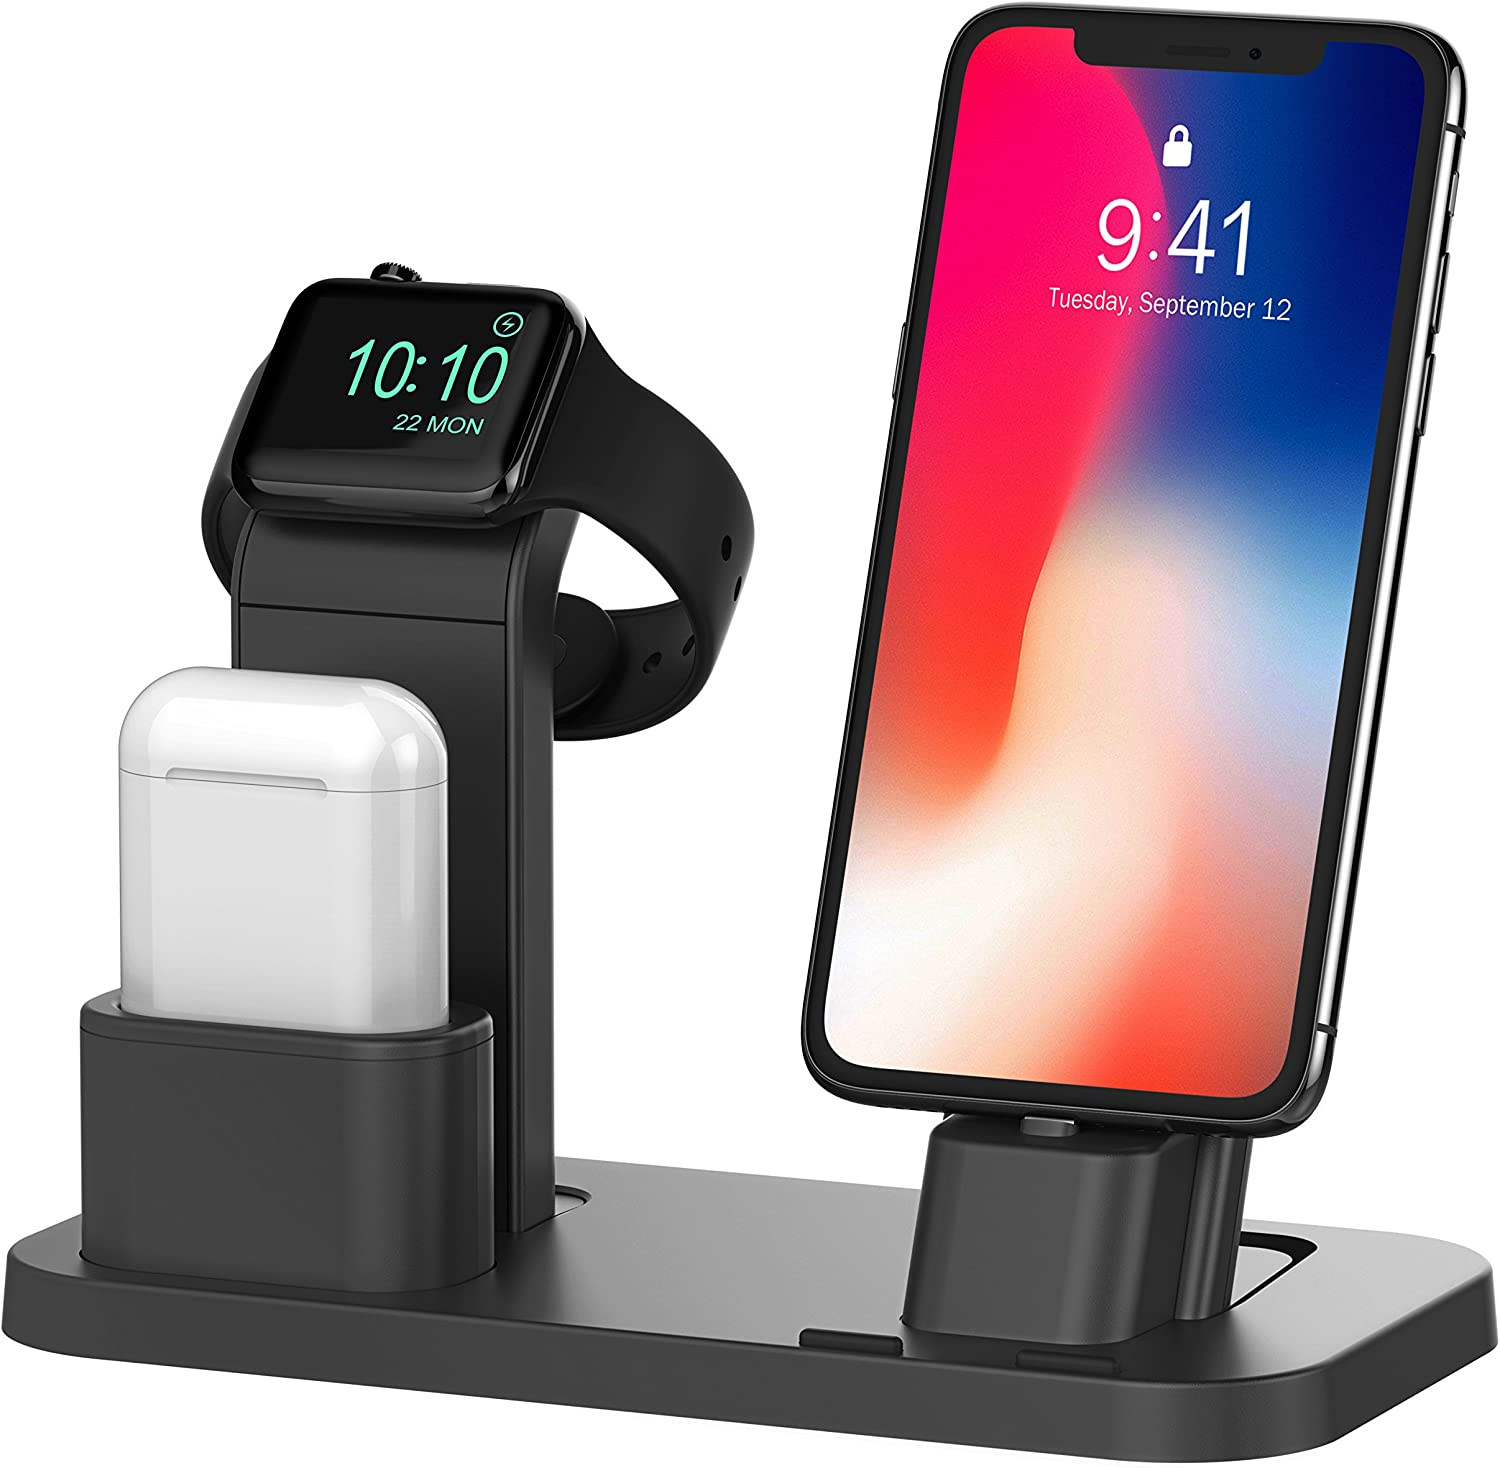 BEACOO Stand for iwatch 5, Charging Stand Dock Station for AirPods